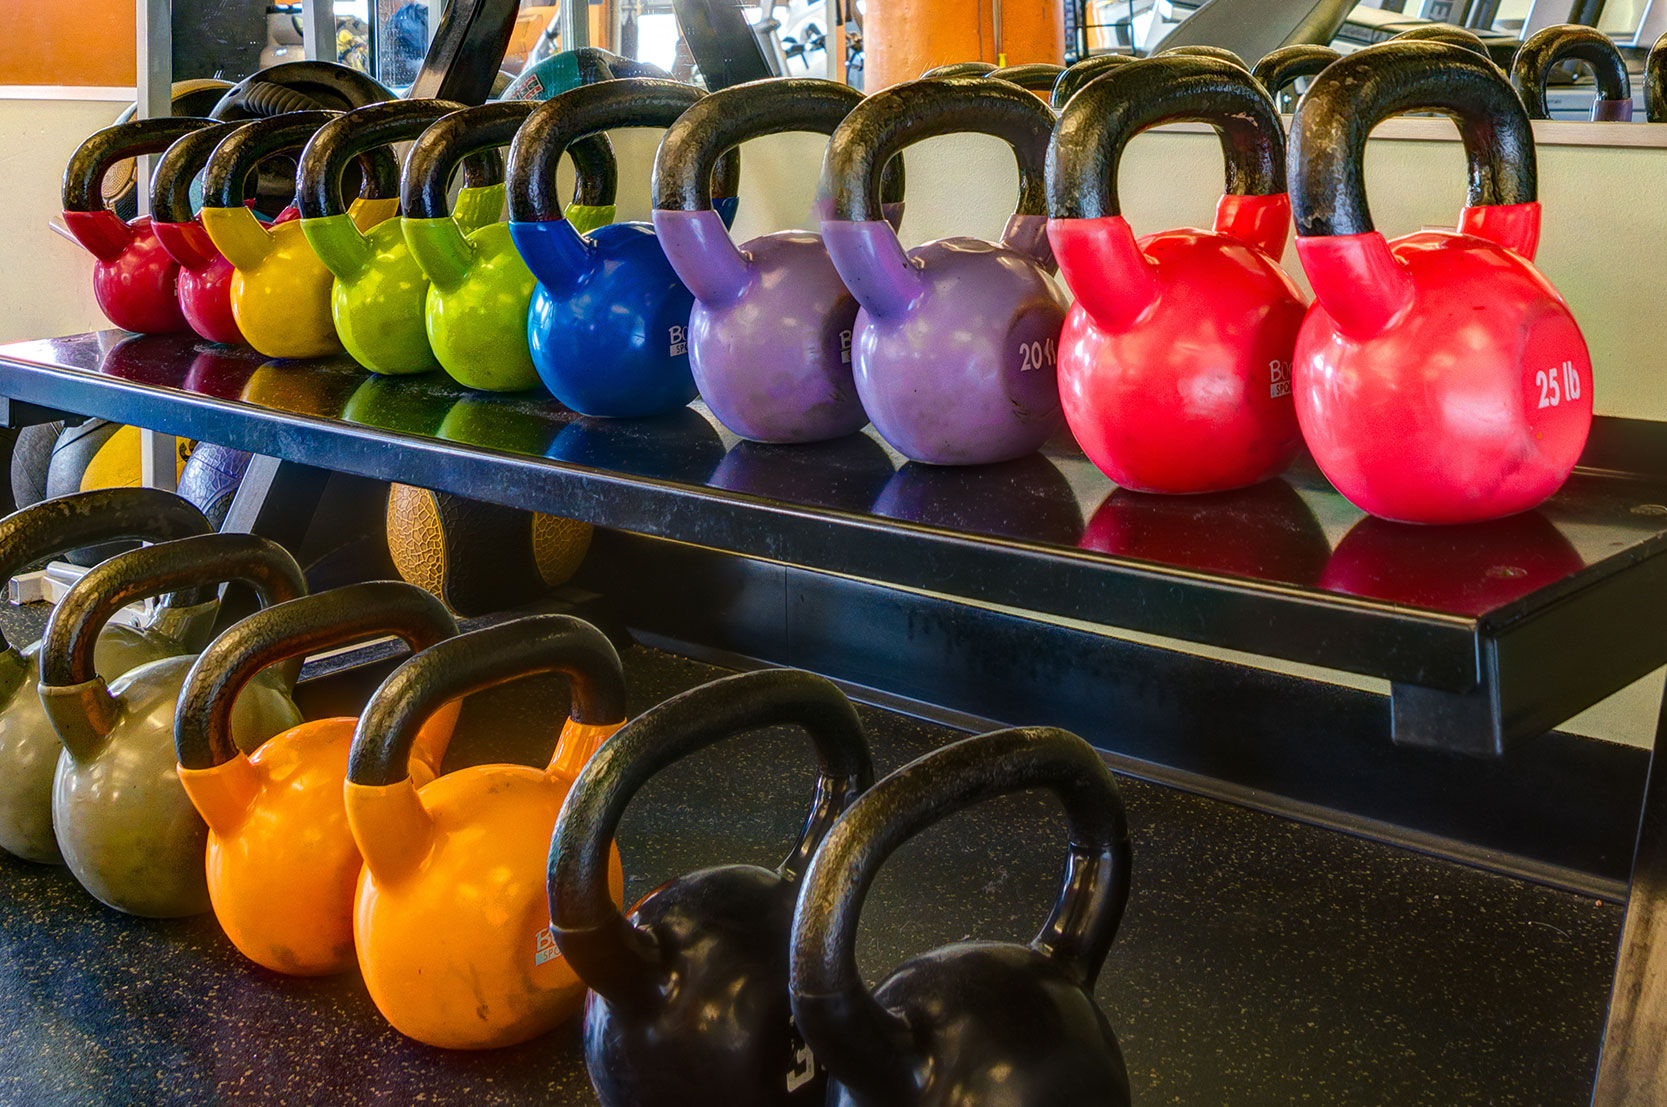 Free fitness center trial in Denver, Colorado